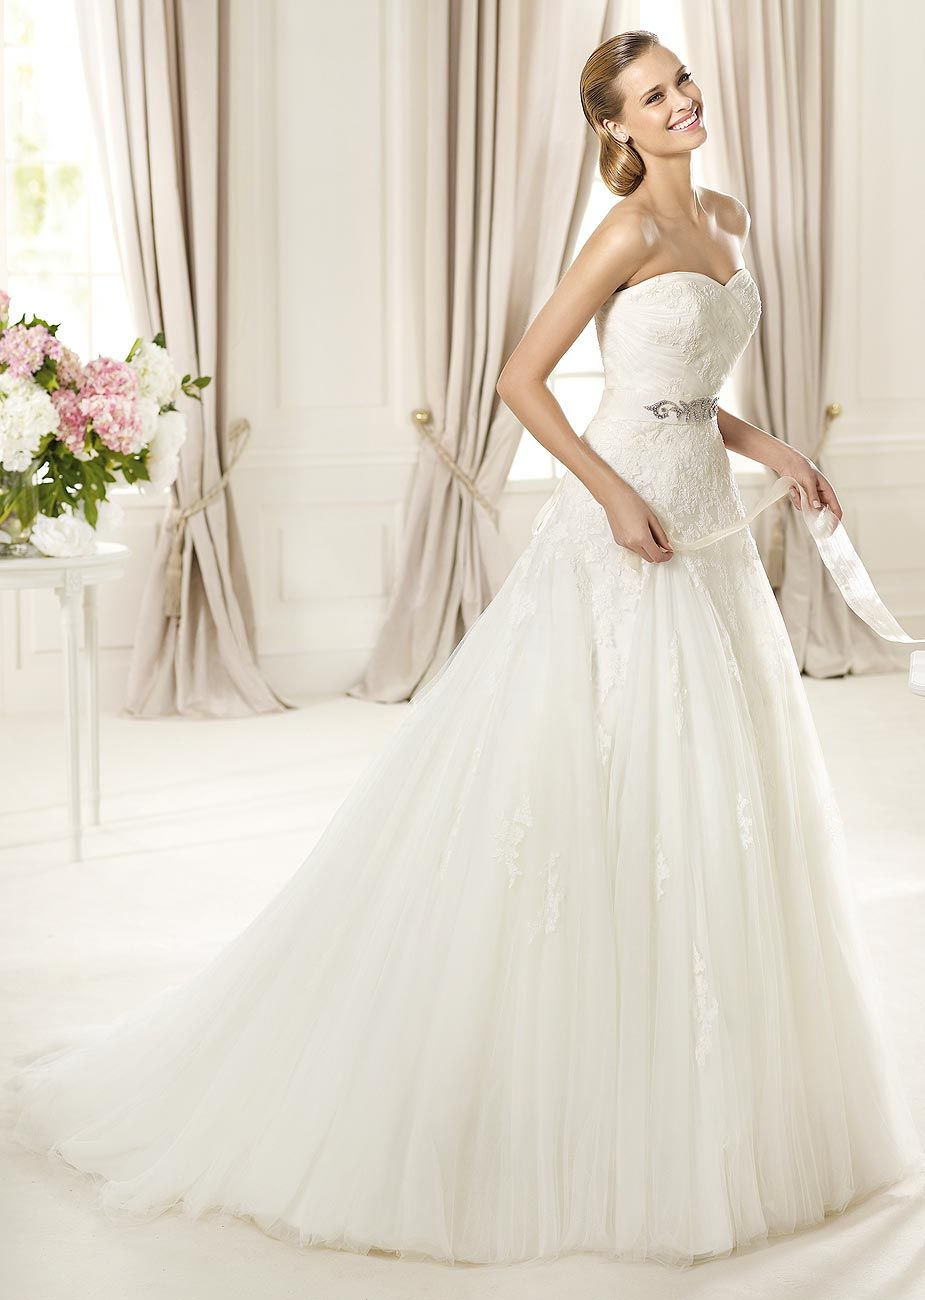 Dagen by pronovias available at teokath of london my wedding